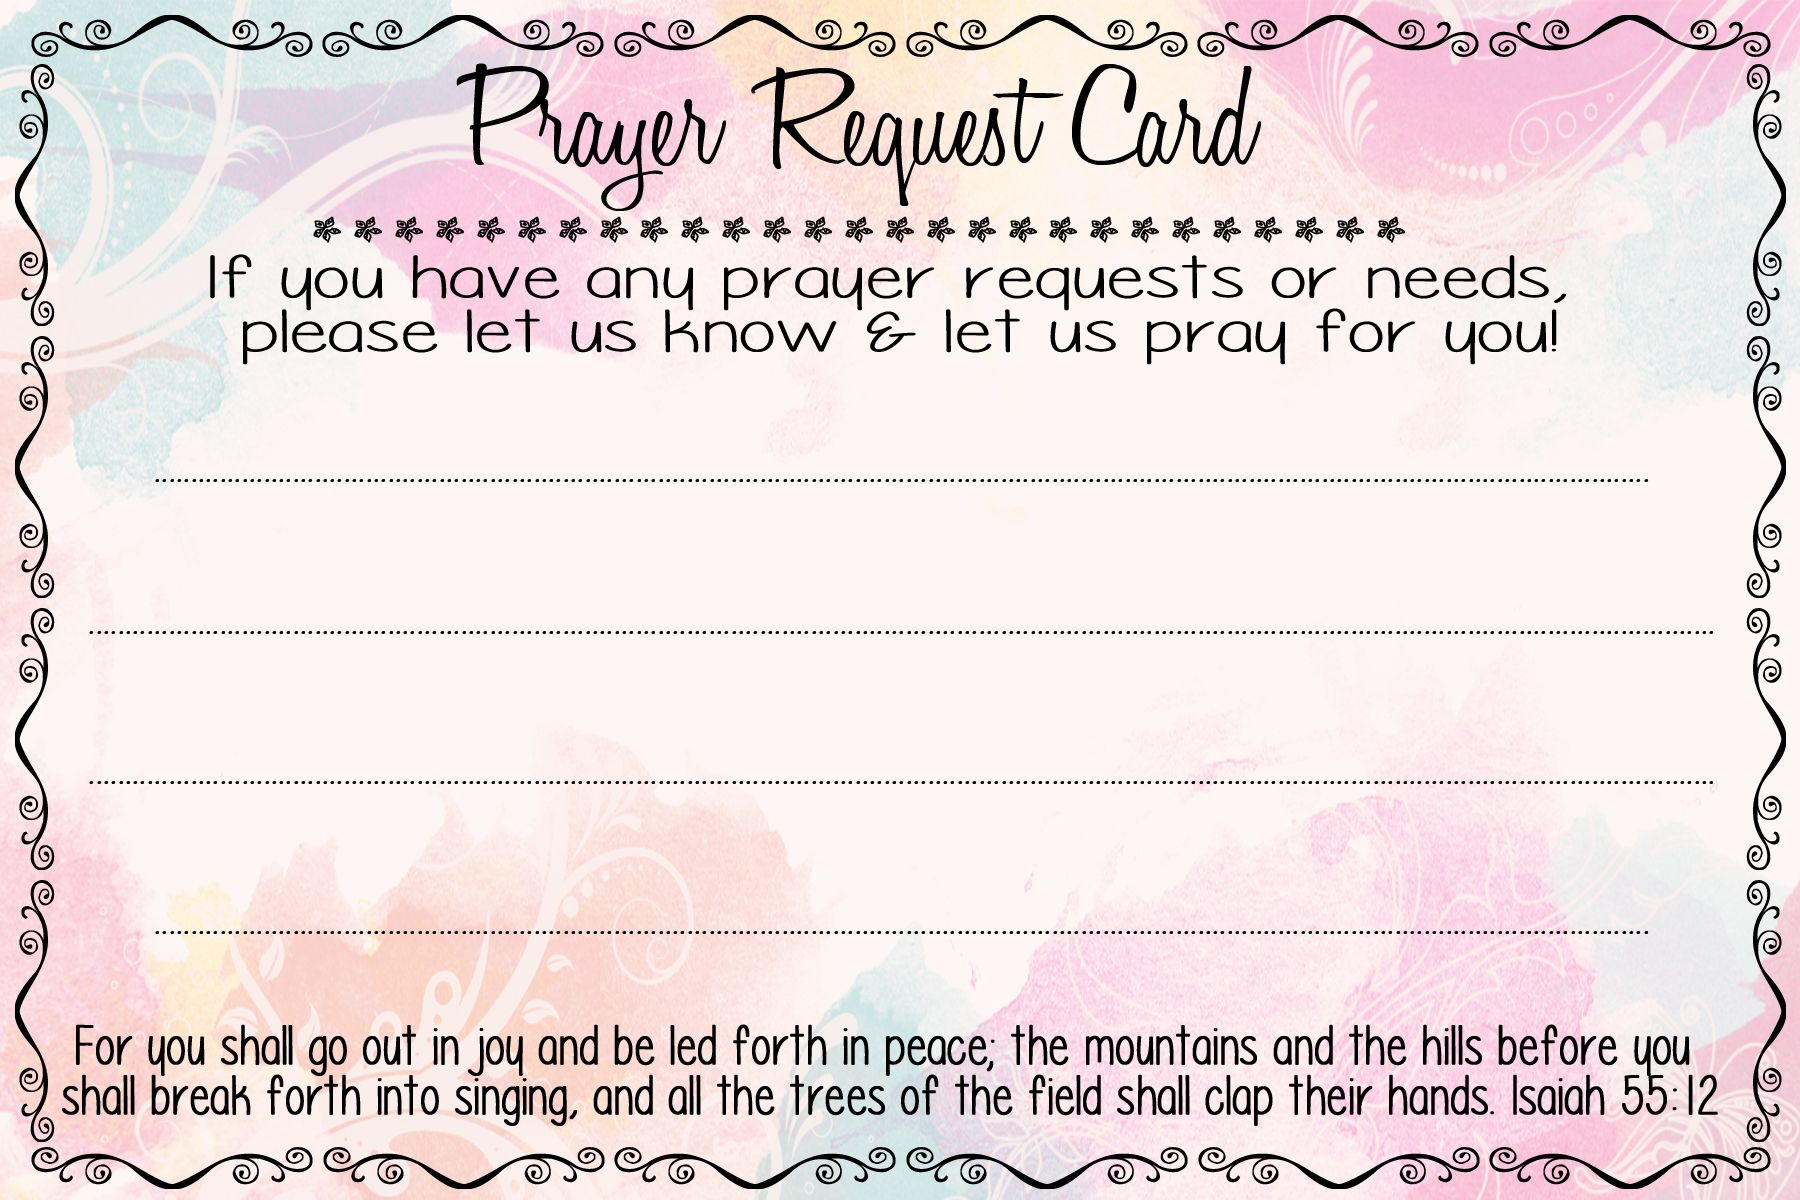 prayer request cards a fierce flourishing pinterest prayer request churches and bible. Black Bedroom Furniture Sets. Home Design Ideas